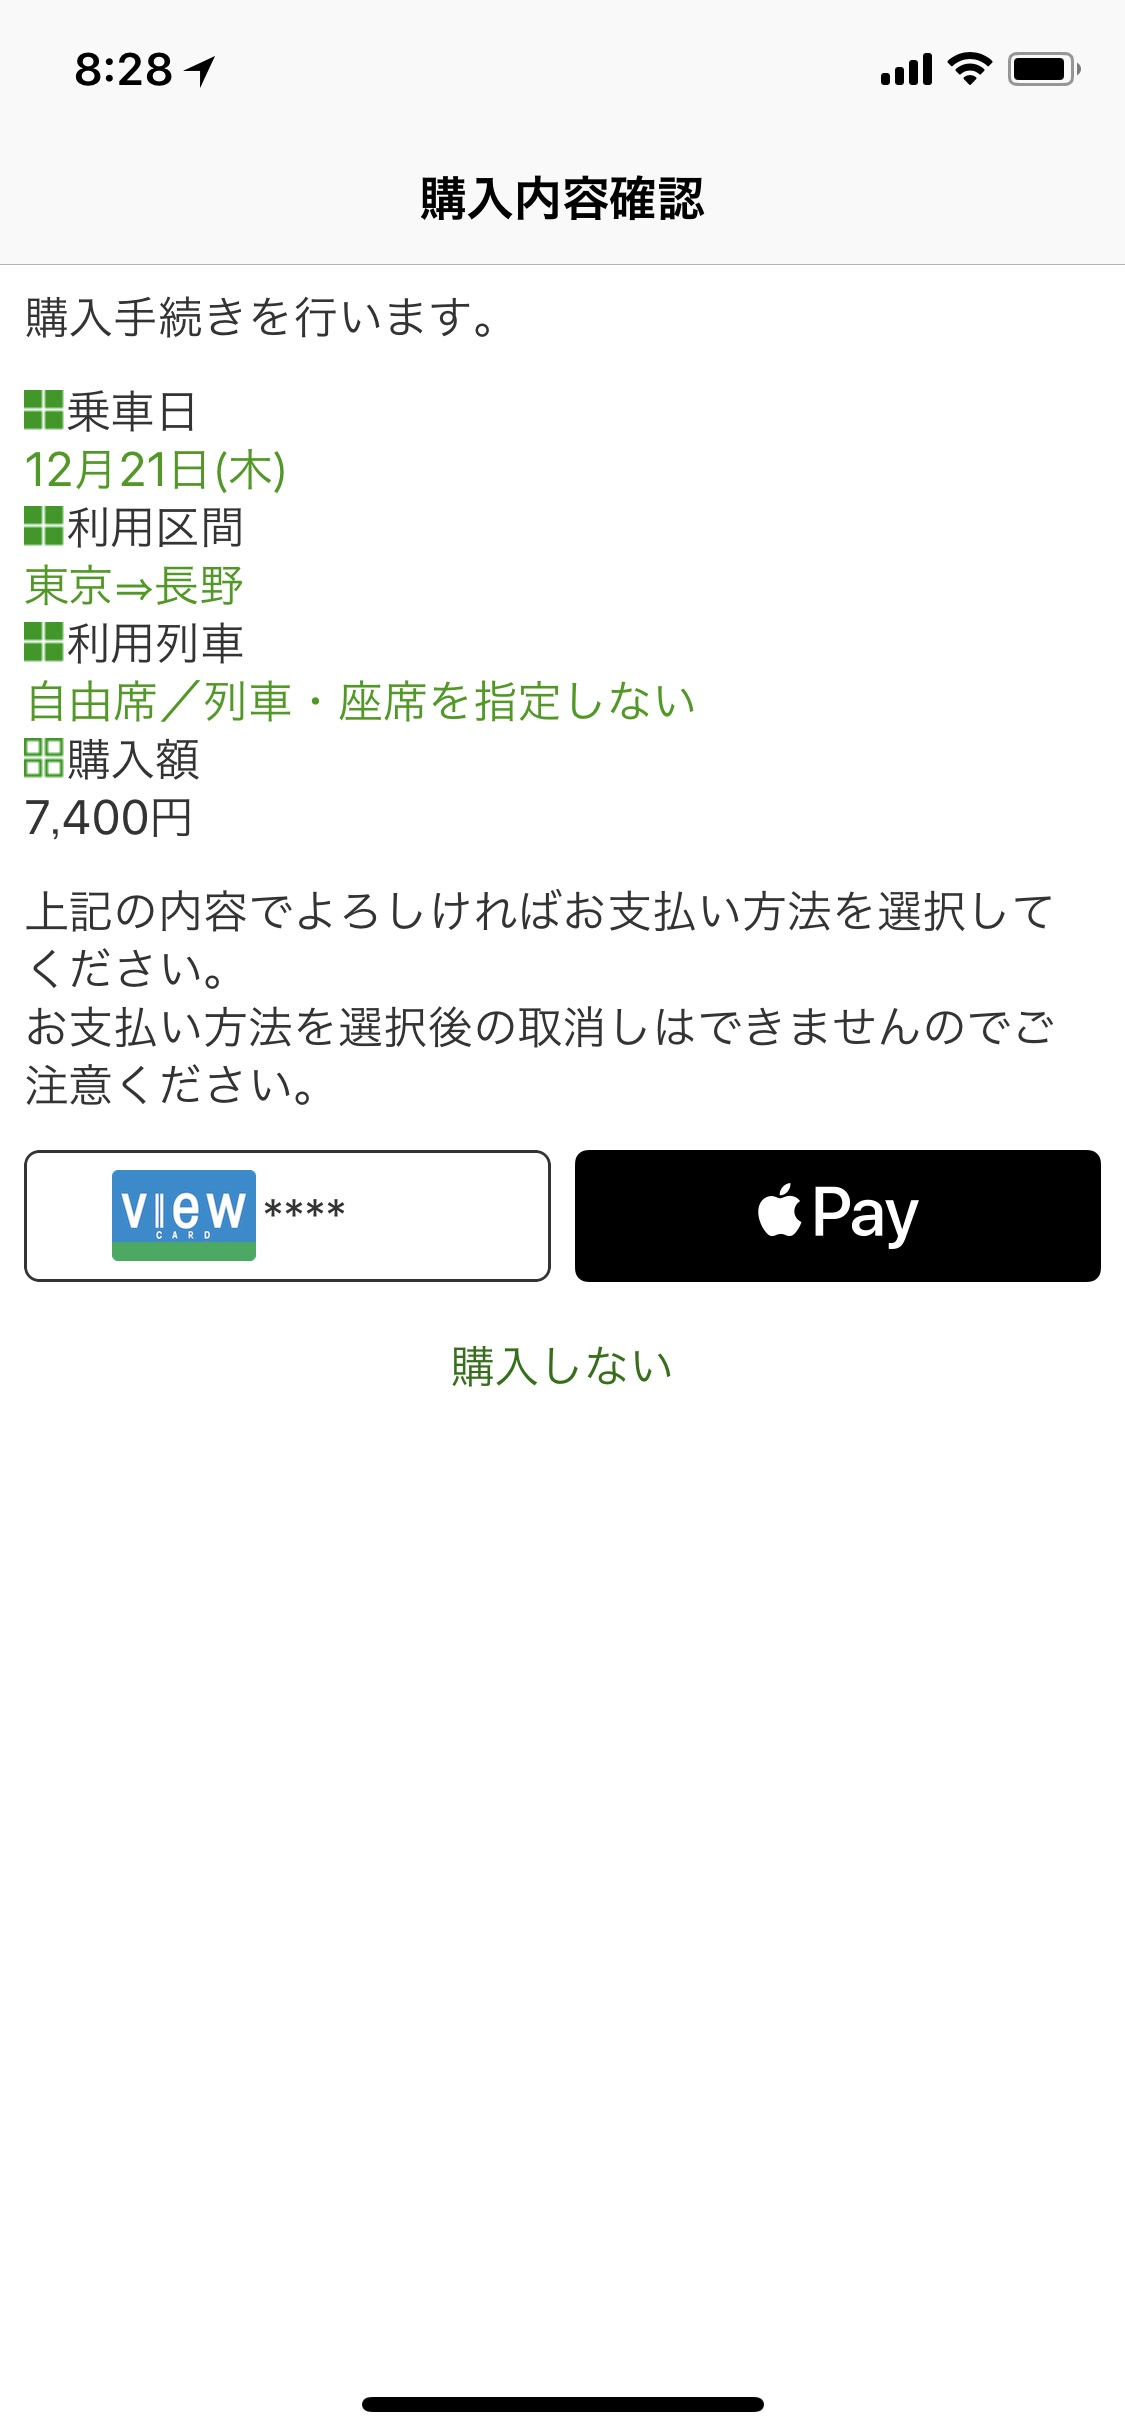 Non-reserve seats are good for all day. If you select non-reserve you are taking directly to the ticket purchase. You can use Apple Pay or Mobile Suica Pay, Be sure to download your e-ticket in Wallet before entering the ticket gate.